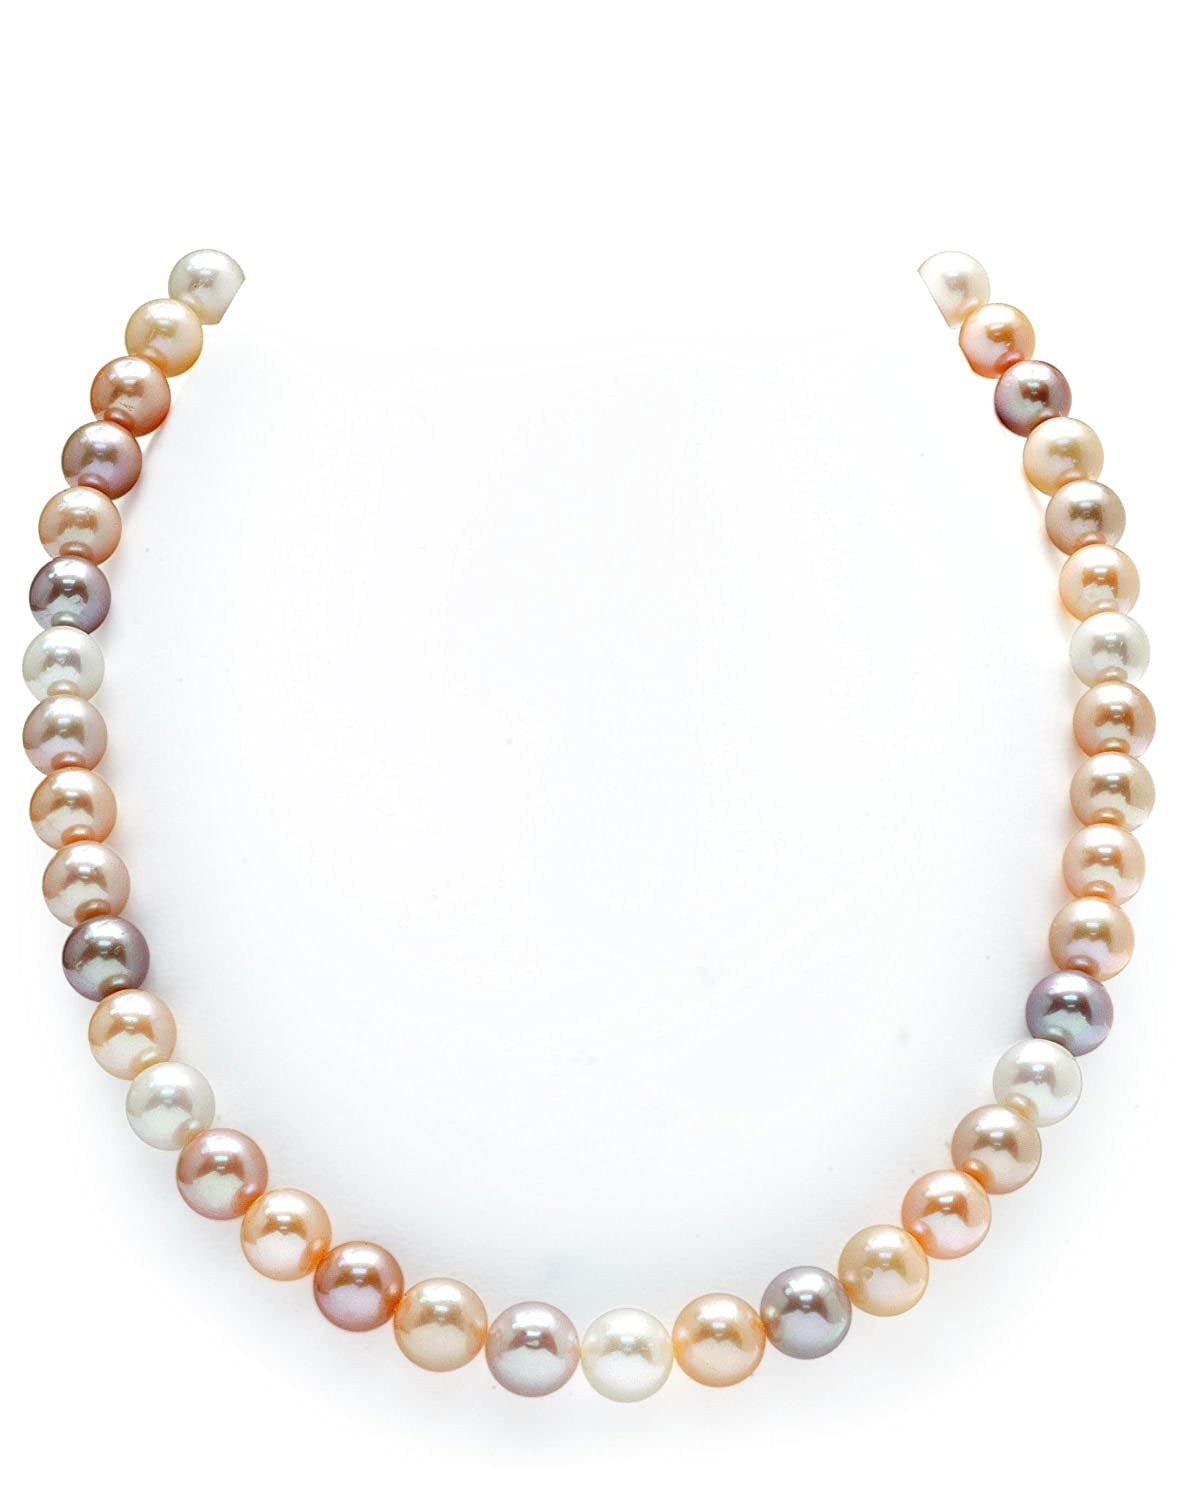 """14K Gold 9-10mm Freshwater Multicolor Cultured Pearl Necklace – AAAA Quality, 20"""" Matinee Length"""